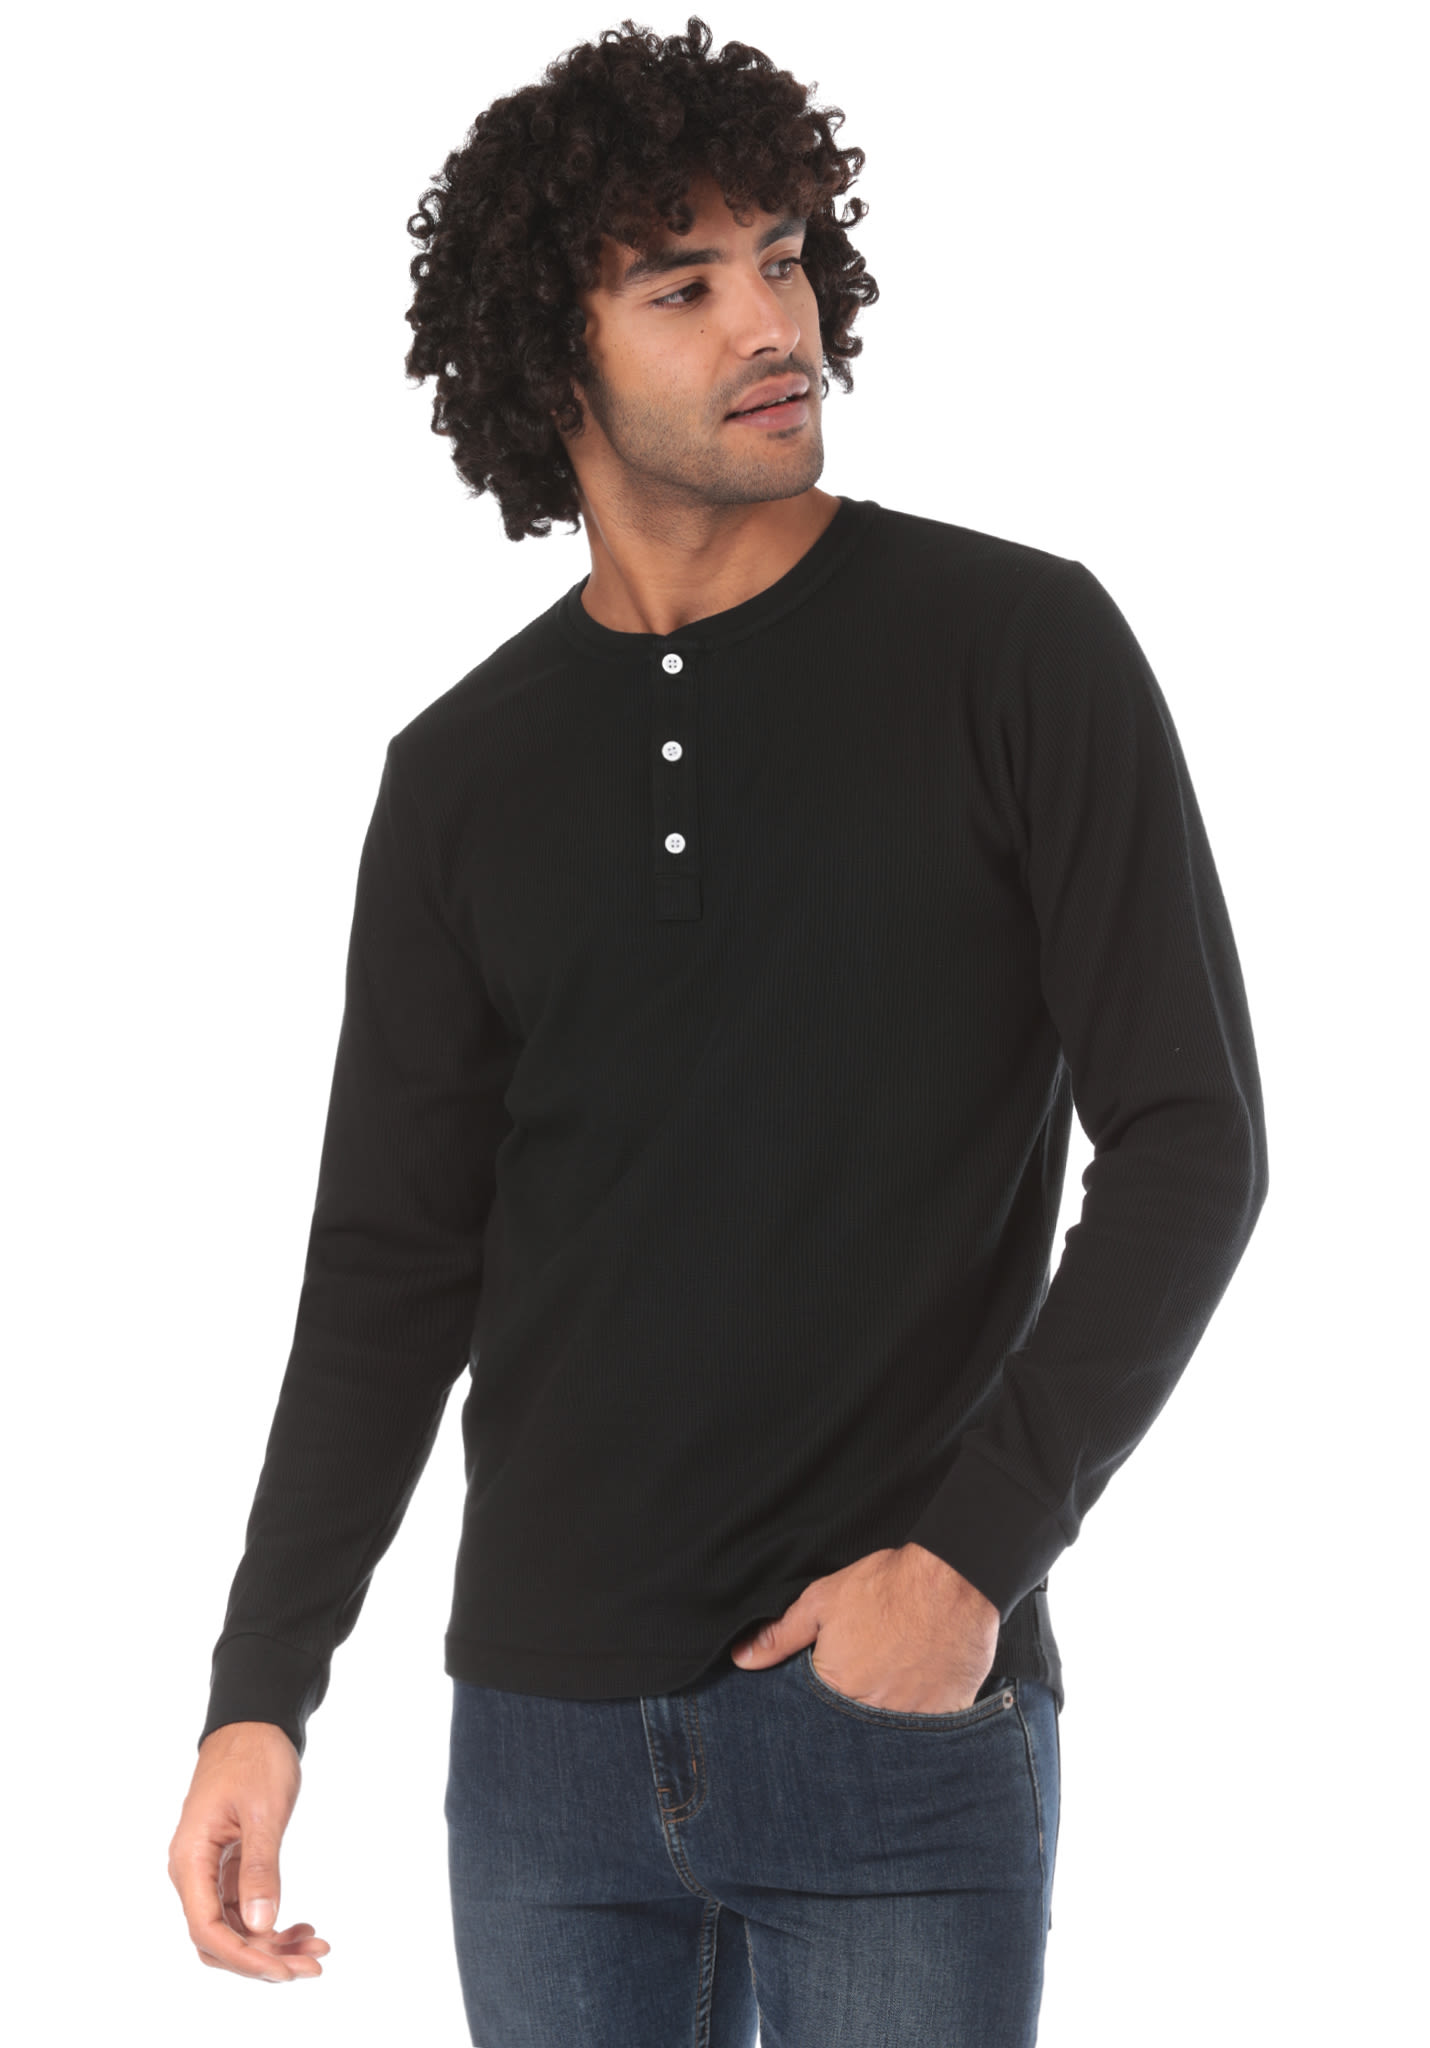 c4aef106 NIKE SB Top Thermal Henley - Long-sleeved Shirt for Men - Black - Planet  Sports